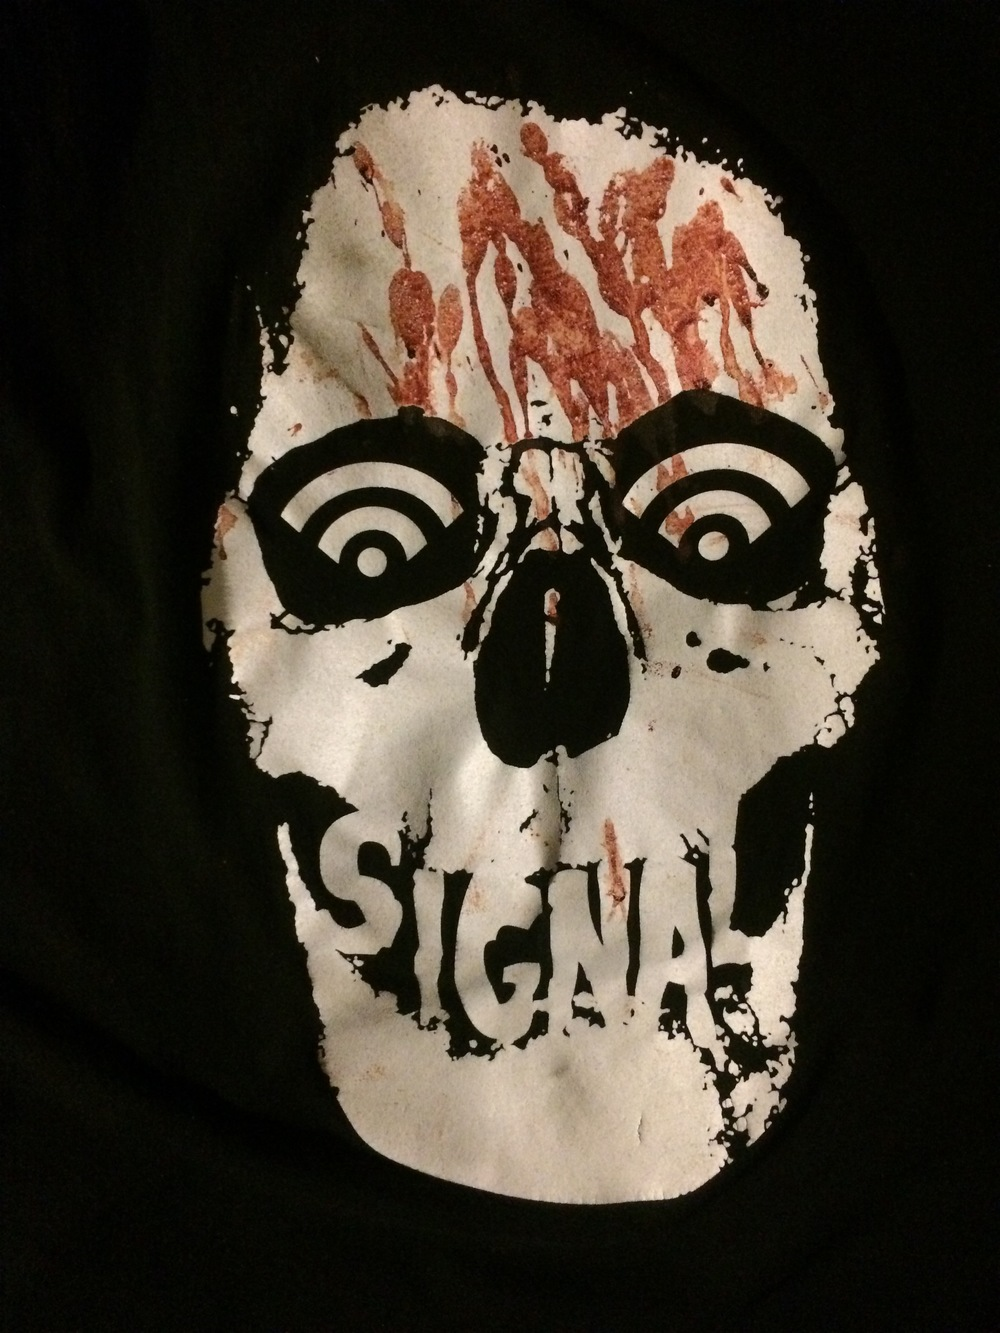 My shirt from that night. People kept asking me if the blood was real or part of my graphic. I think I may have to add blood to this tee for next year....